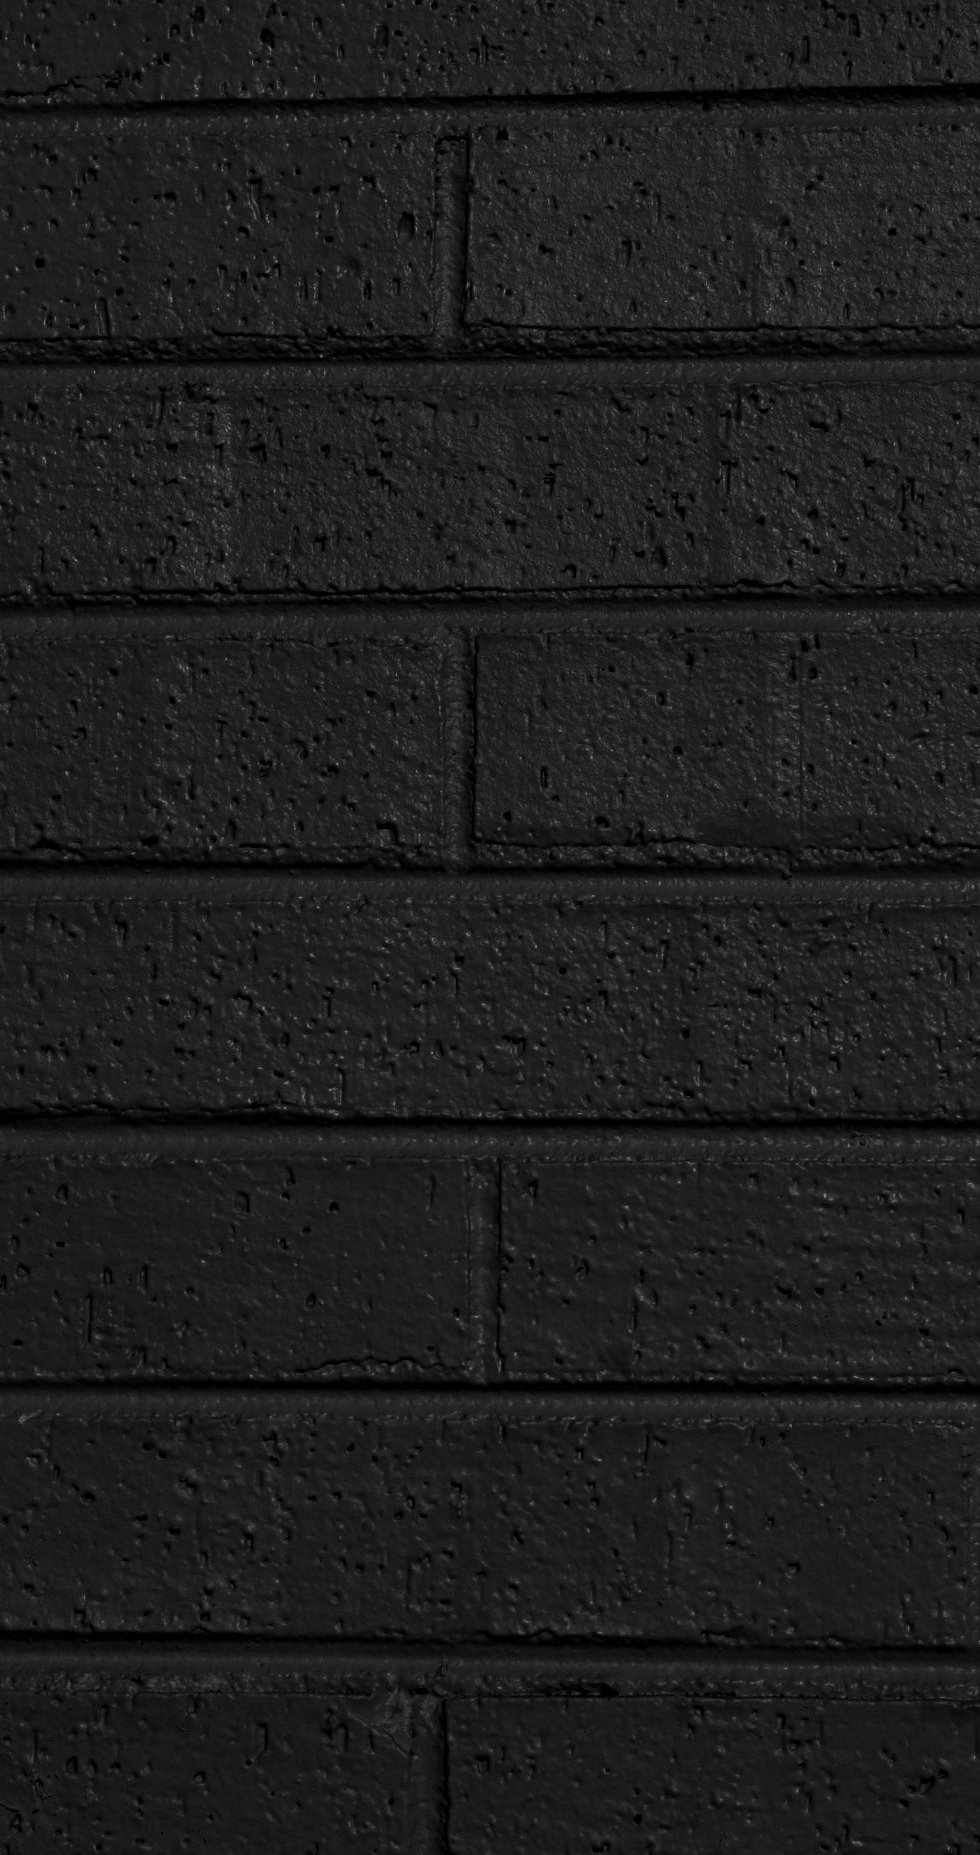 black-painted-brick-wall-texture.jpg